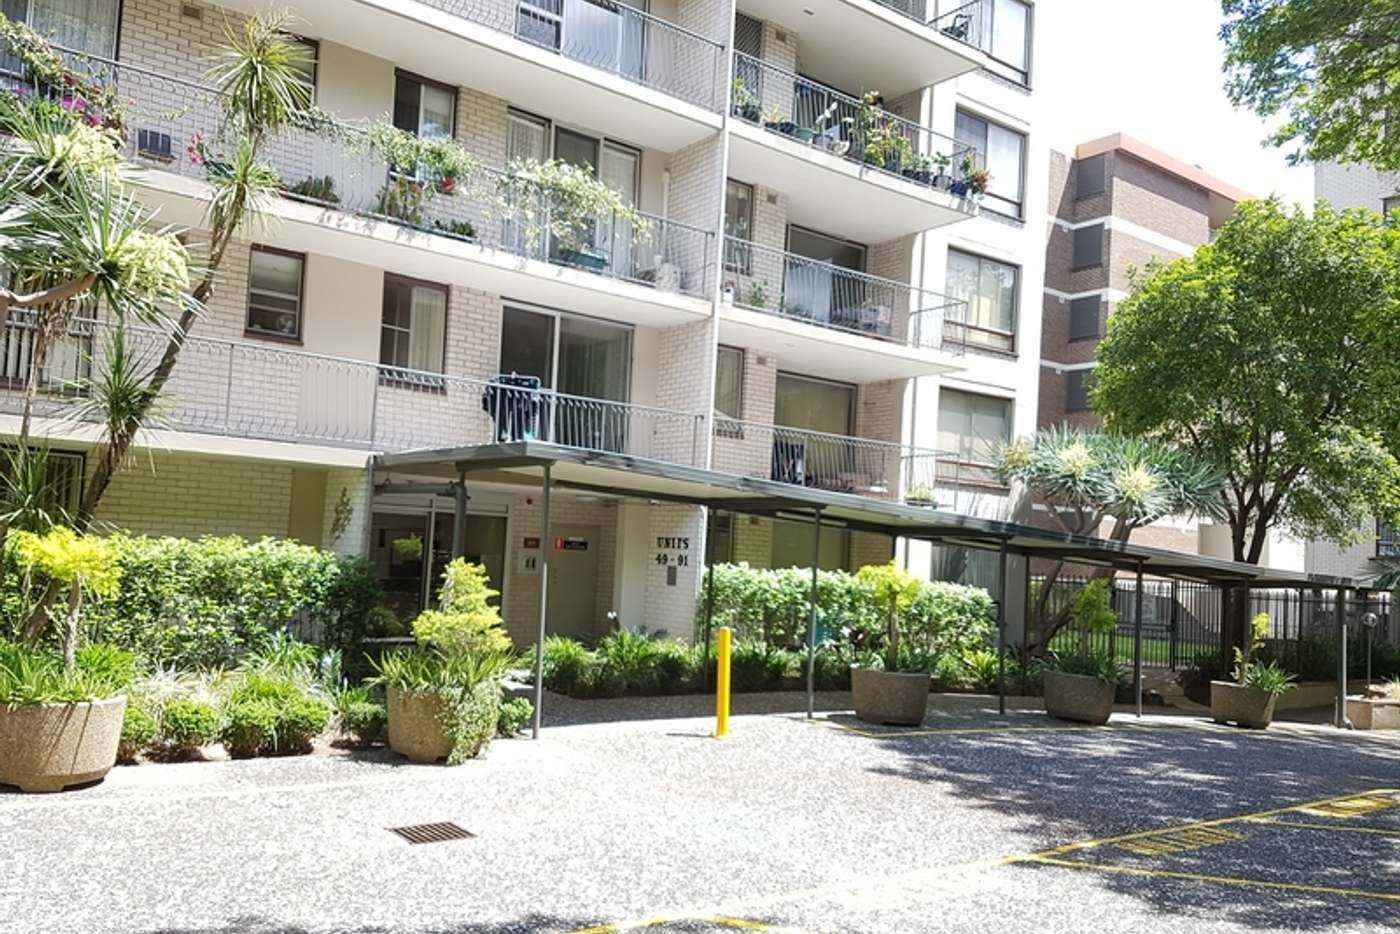 Main view of Homely unit listing, 83/64-66 Great Western Highway, Parramatta NSW 2150